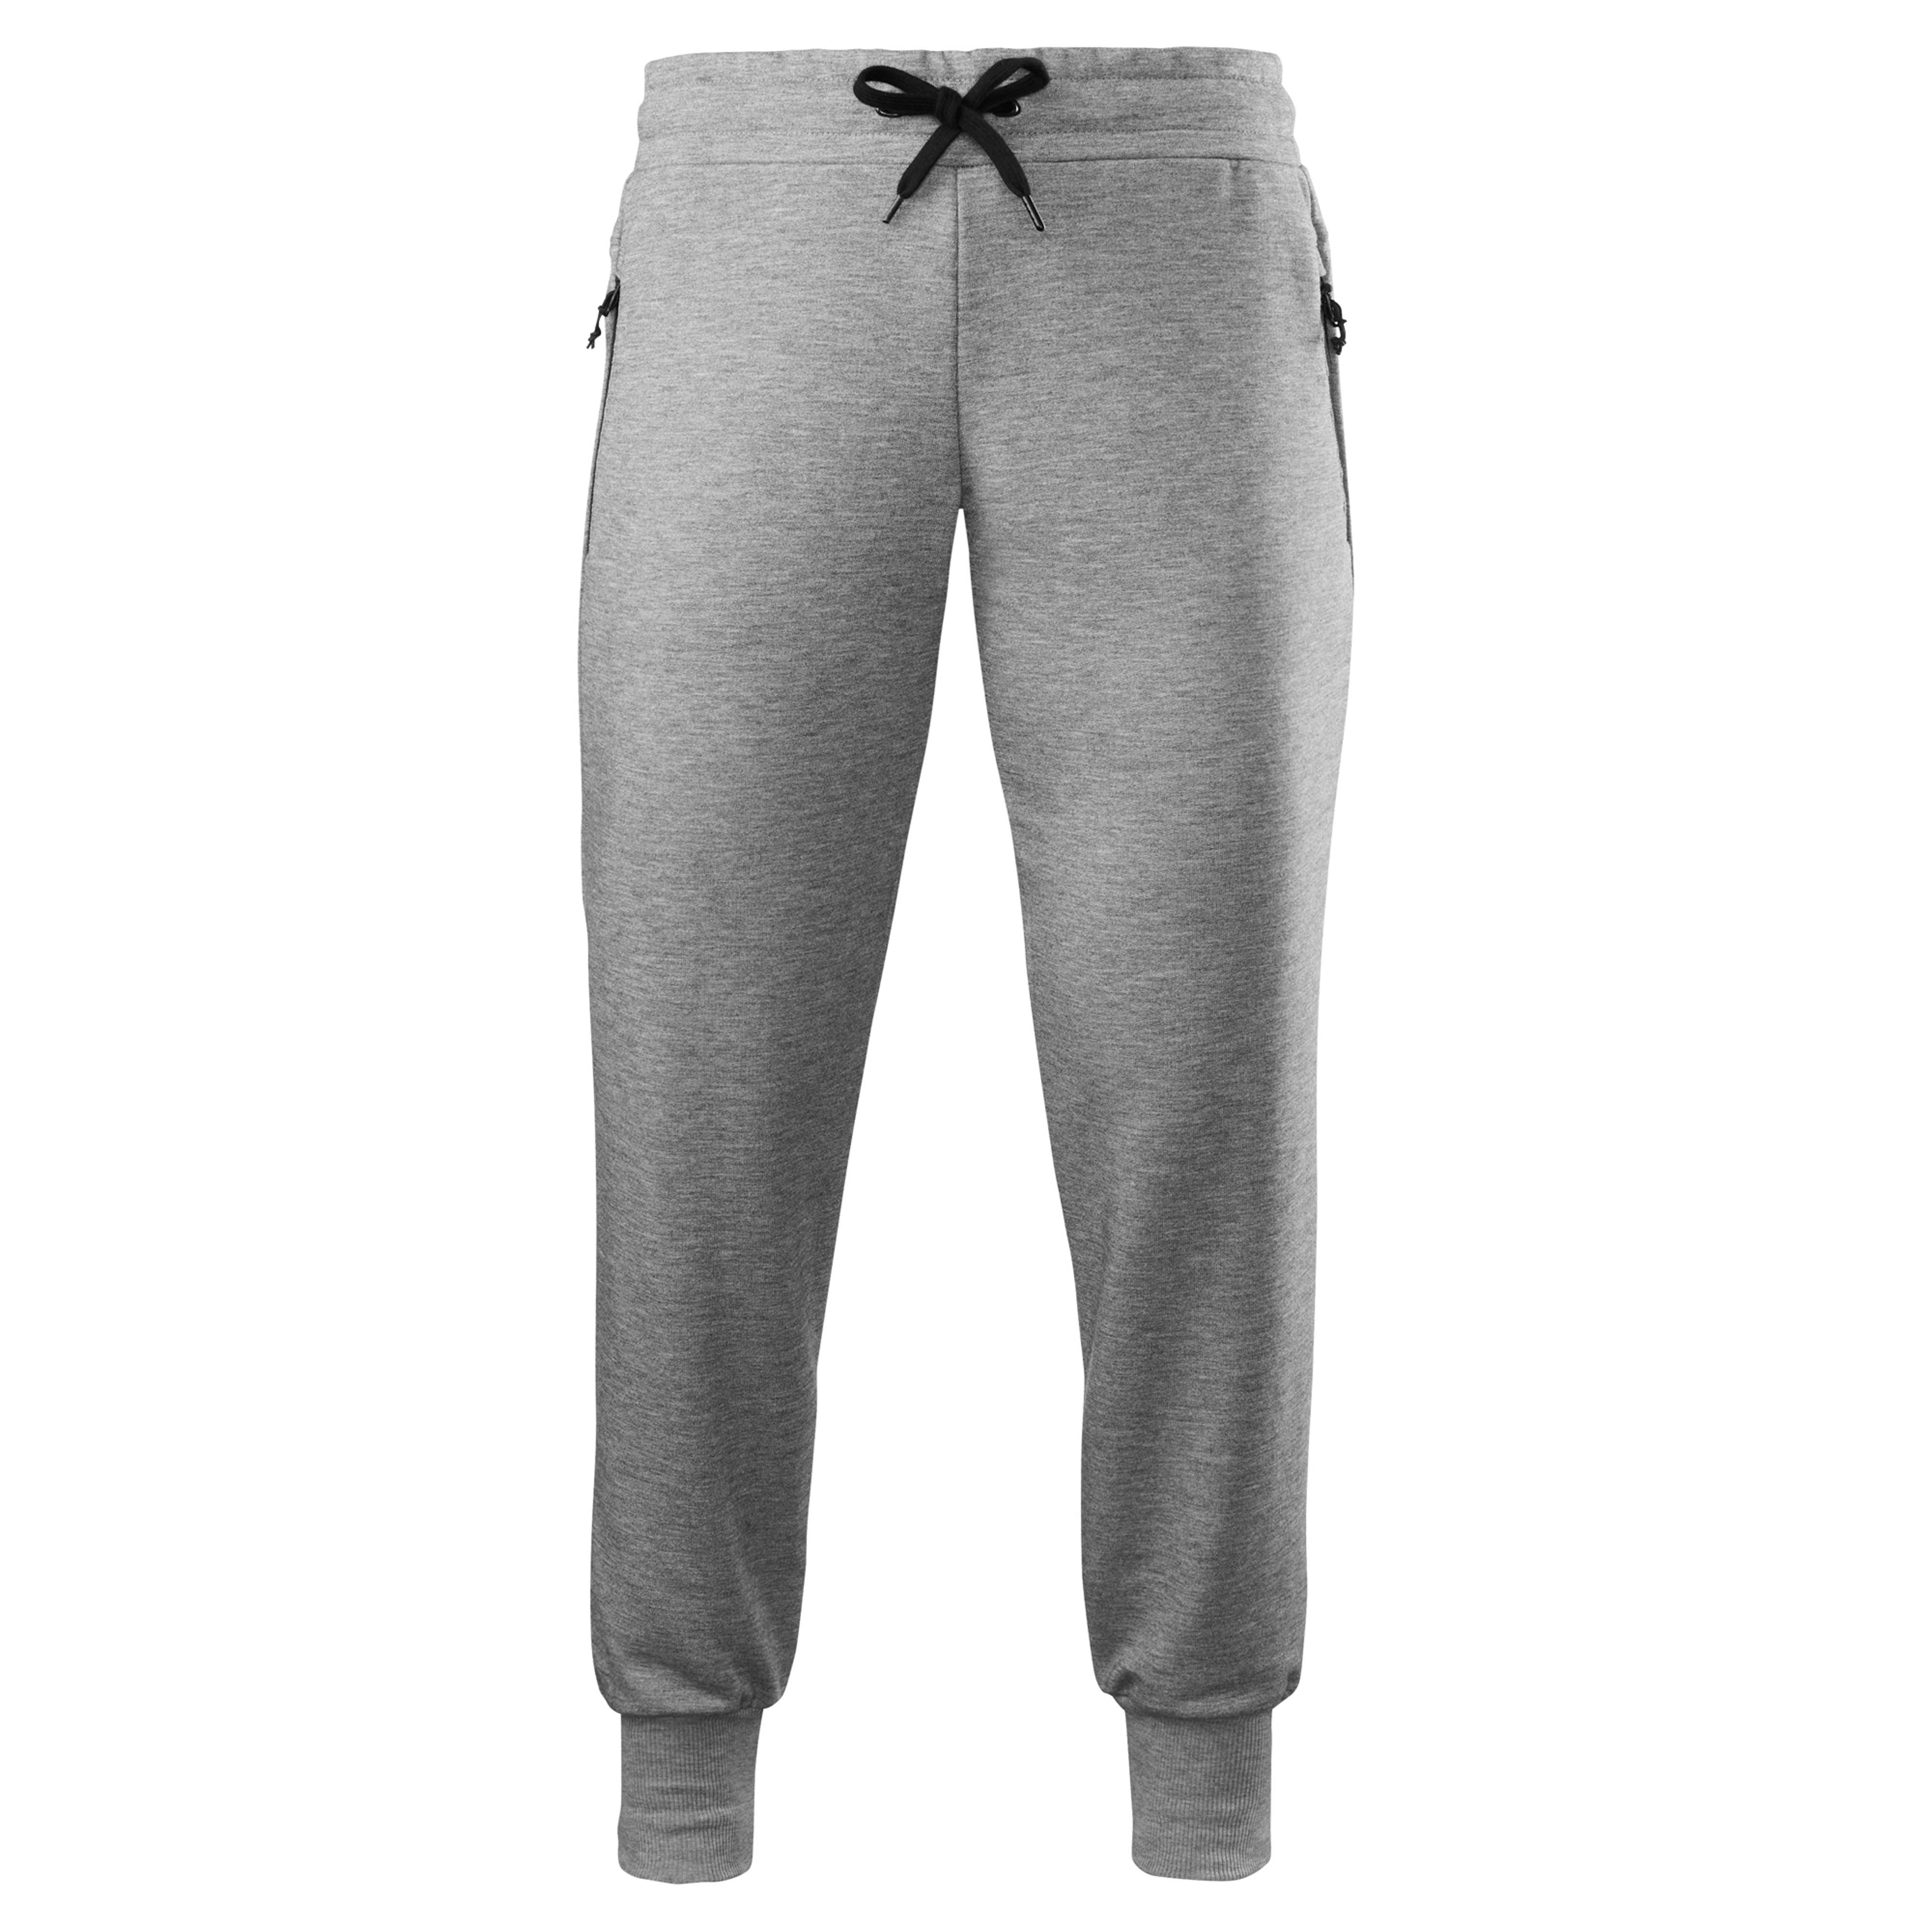 cc112a73bf2b Federate Women s Travel Joggers